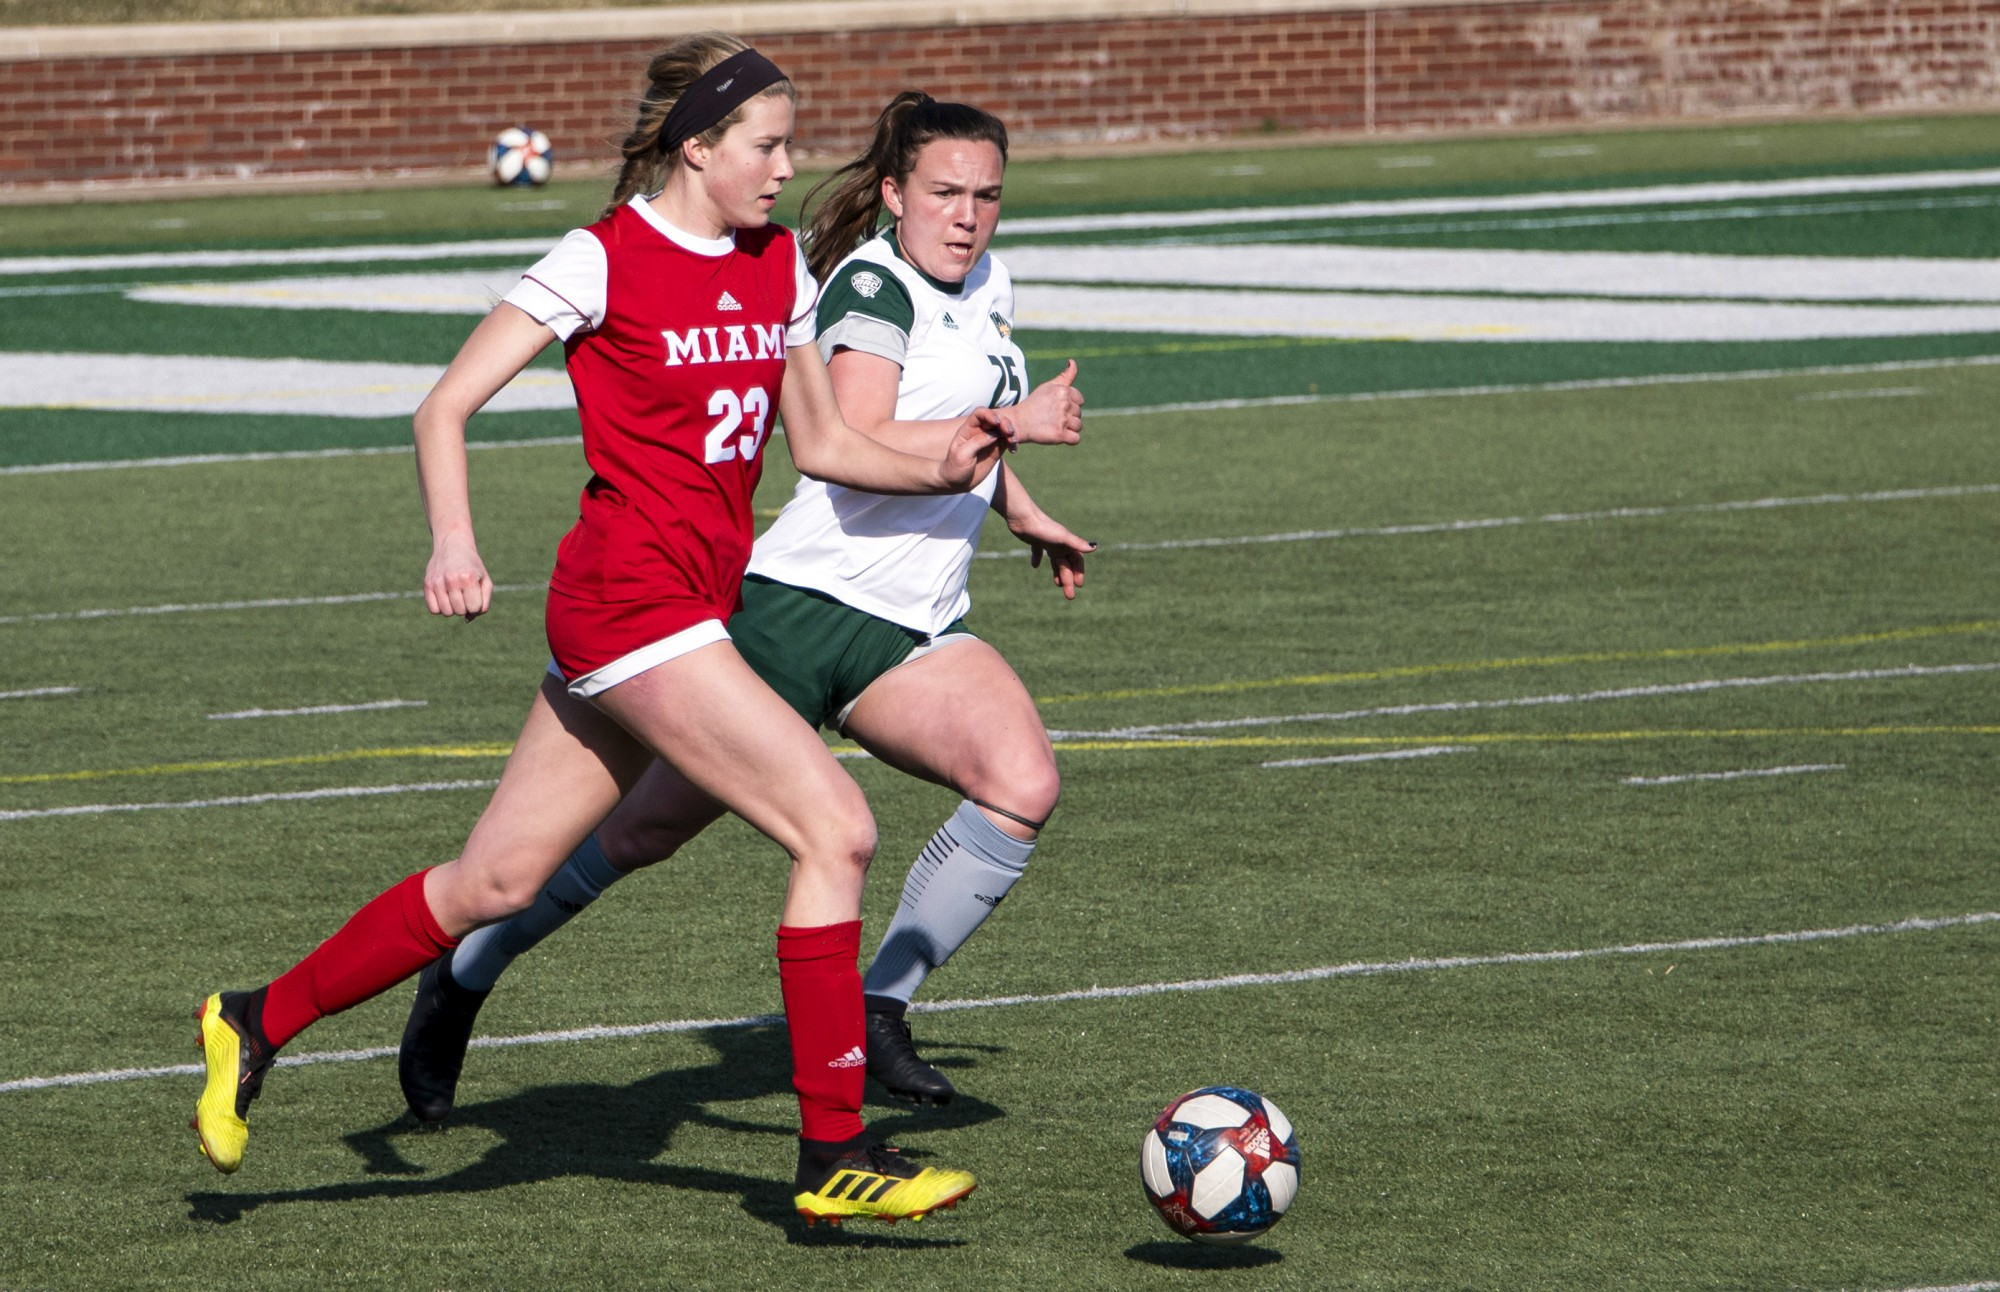 Izzi Boyd (#25) races for possession of the ball during the Ohio University home game at Peden Stadium in Athens, Ohio, on March 4, 2021. The Bobcats lost to the Redhawks 0-1. (FILE)